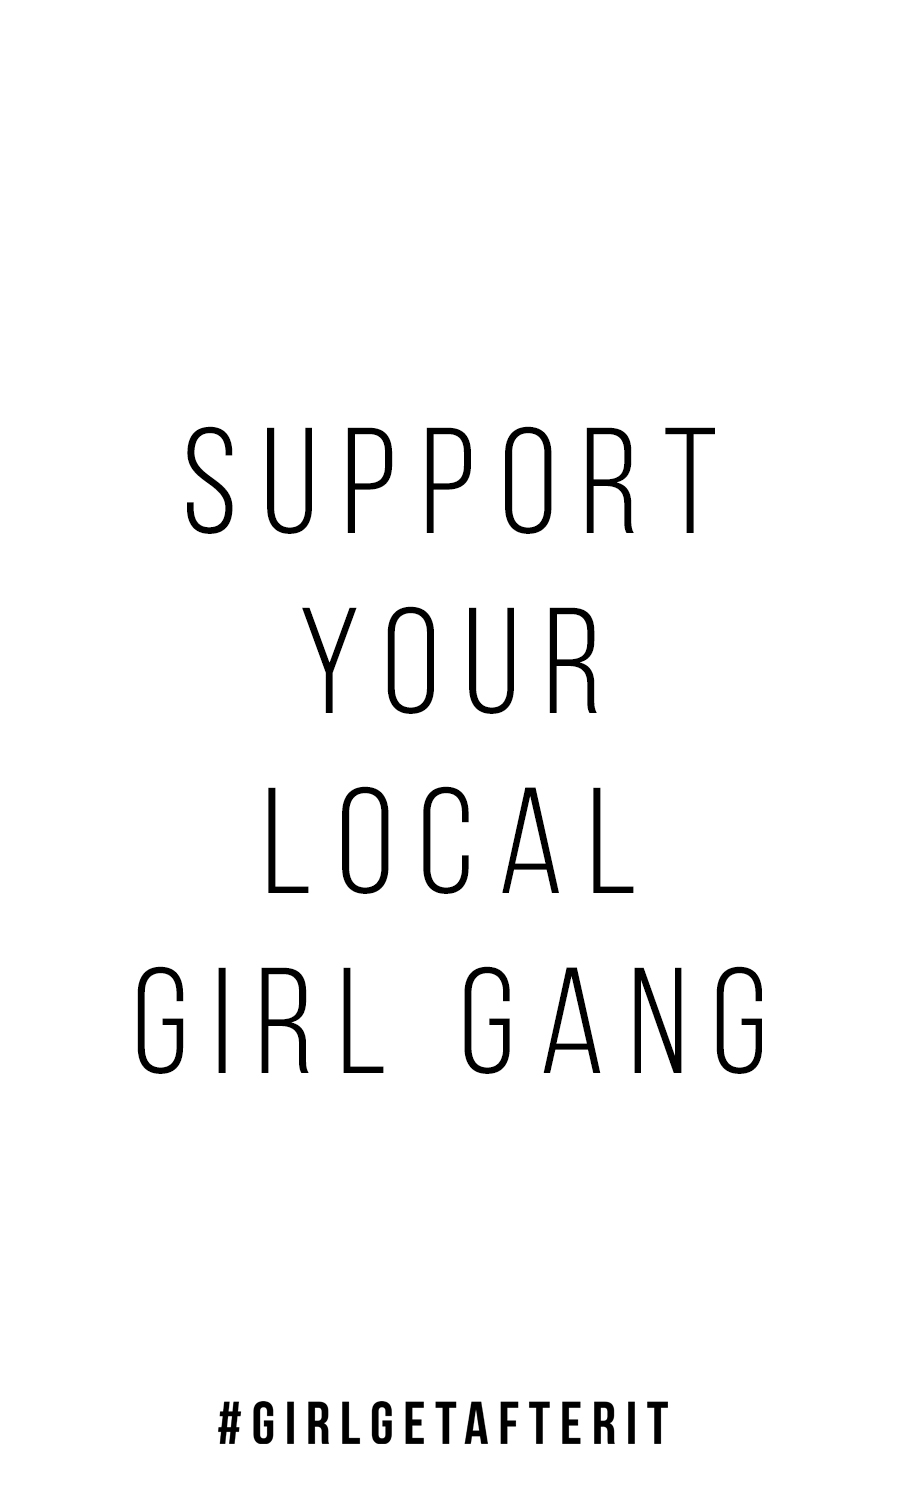 support your local girl gang as community is what it's all about